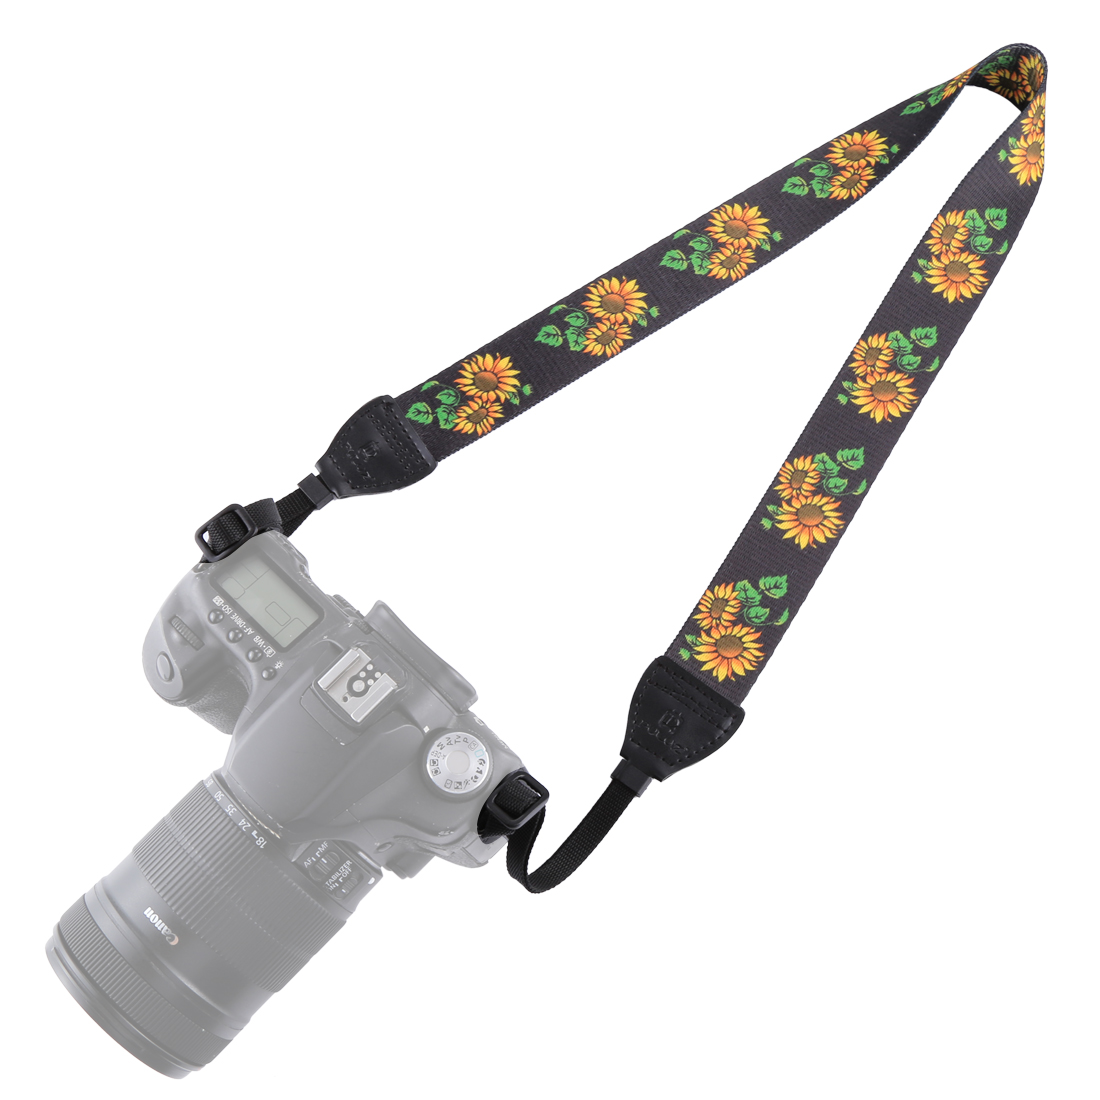 PULUZ PU6009C Retro Ethnic Style Multi-color Series Shoulder Neck Strap for SLR DSLR Camera